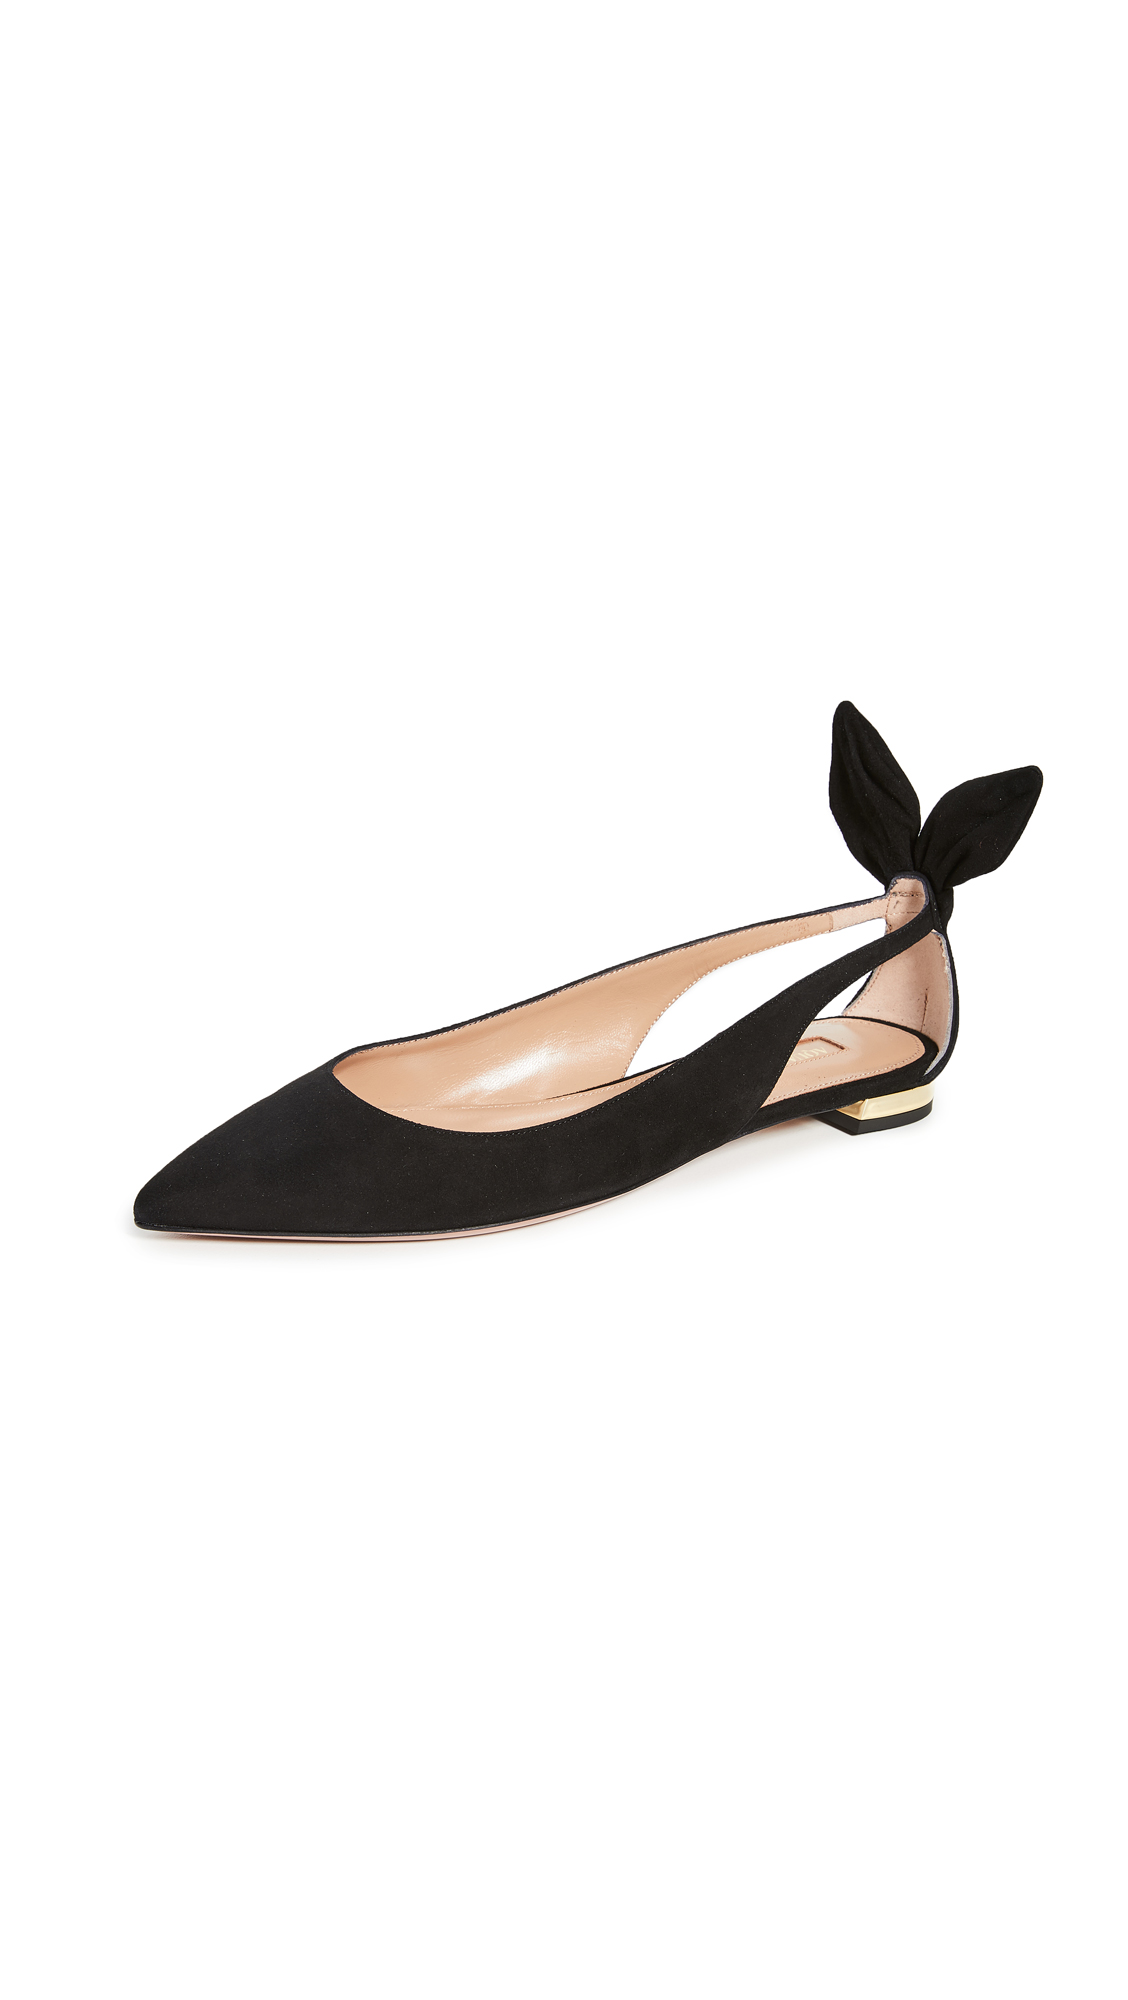 Buy Aquazzura Bow Tie Ballet Flats online, shop Aquazzura